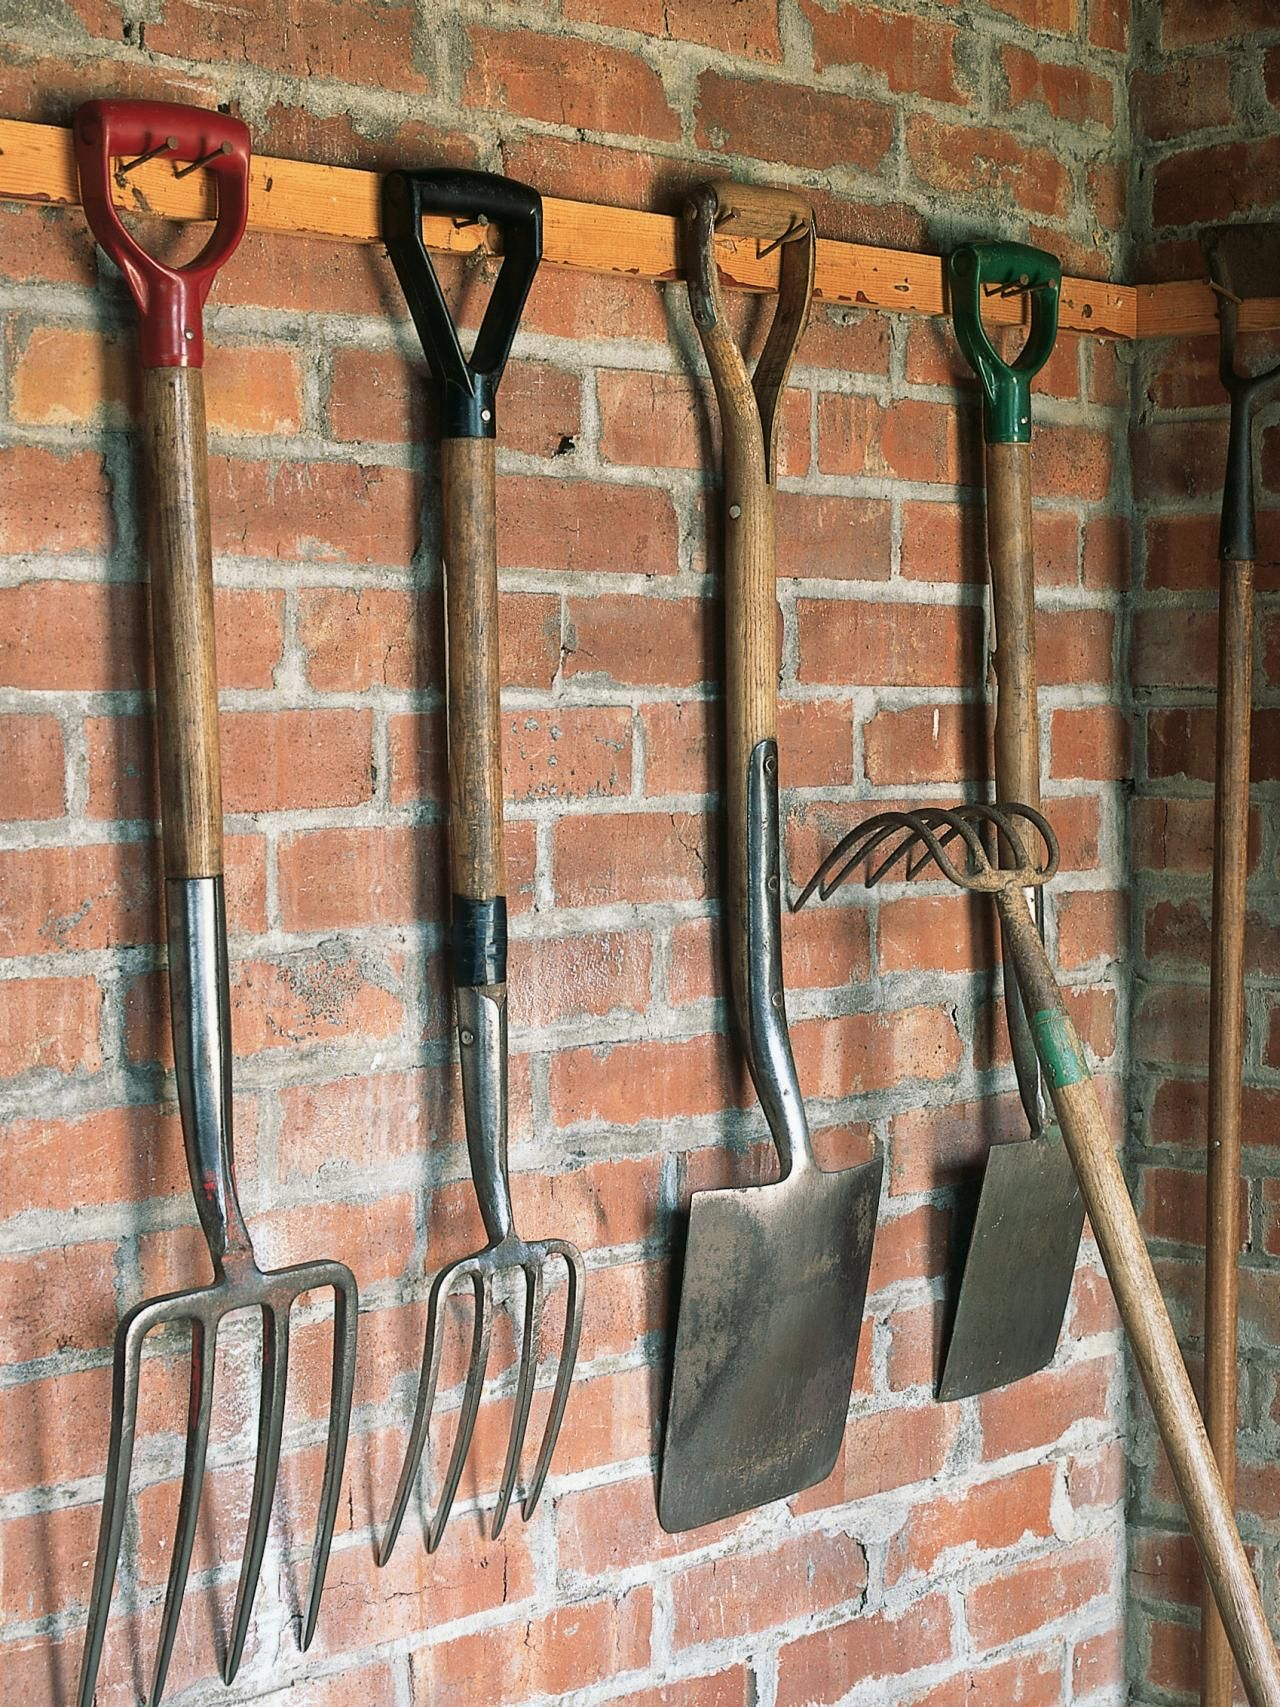 Organize Lawn And Garden Tools In The Garage Home Remodeling Ideas For Bats Theaters More Hgtv